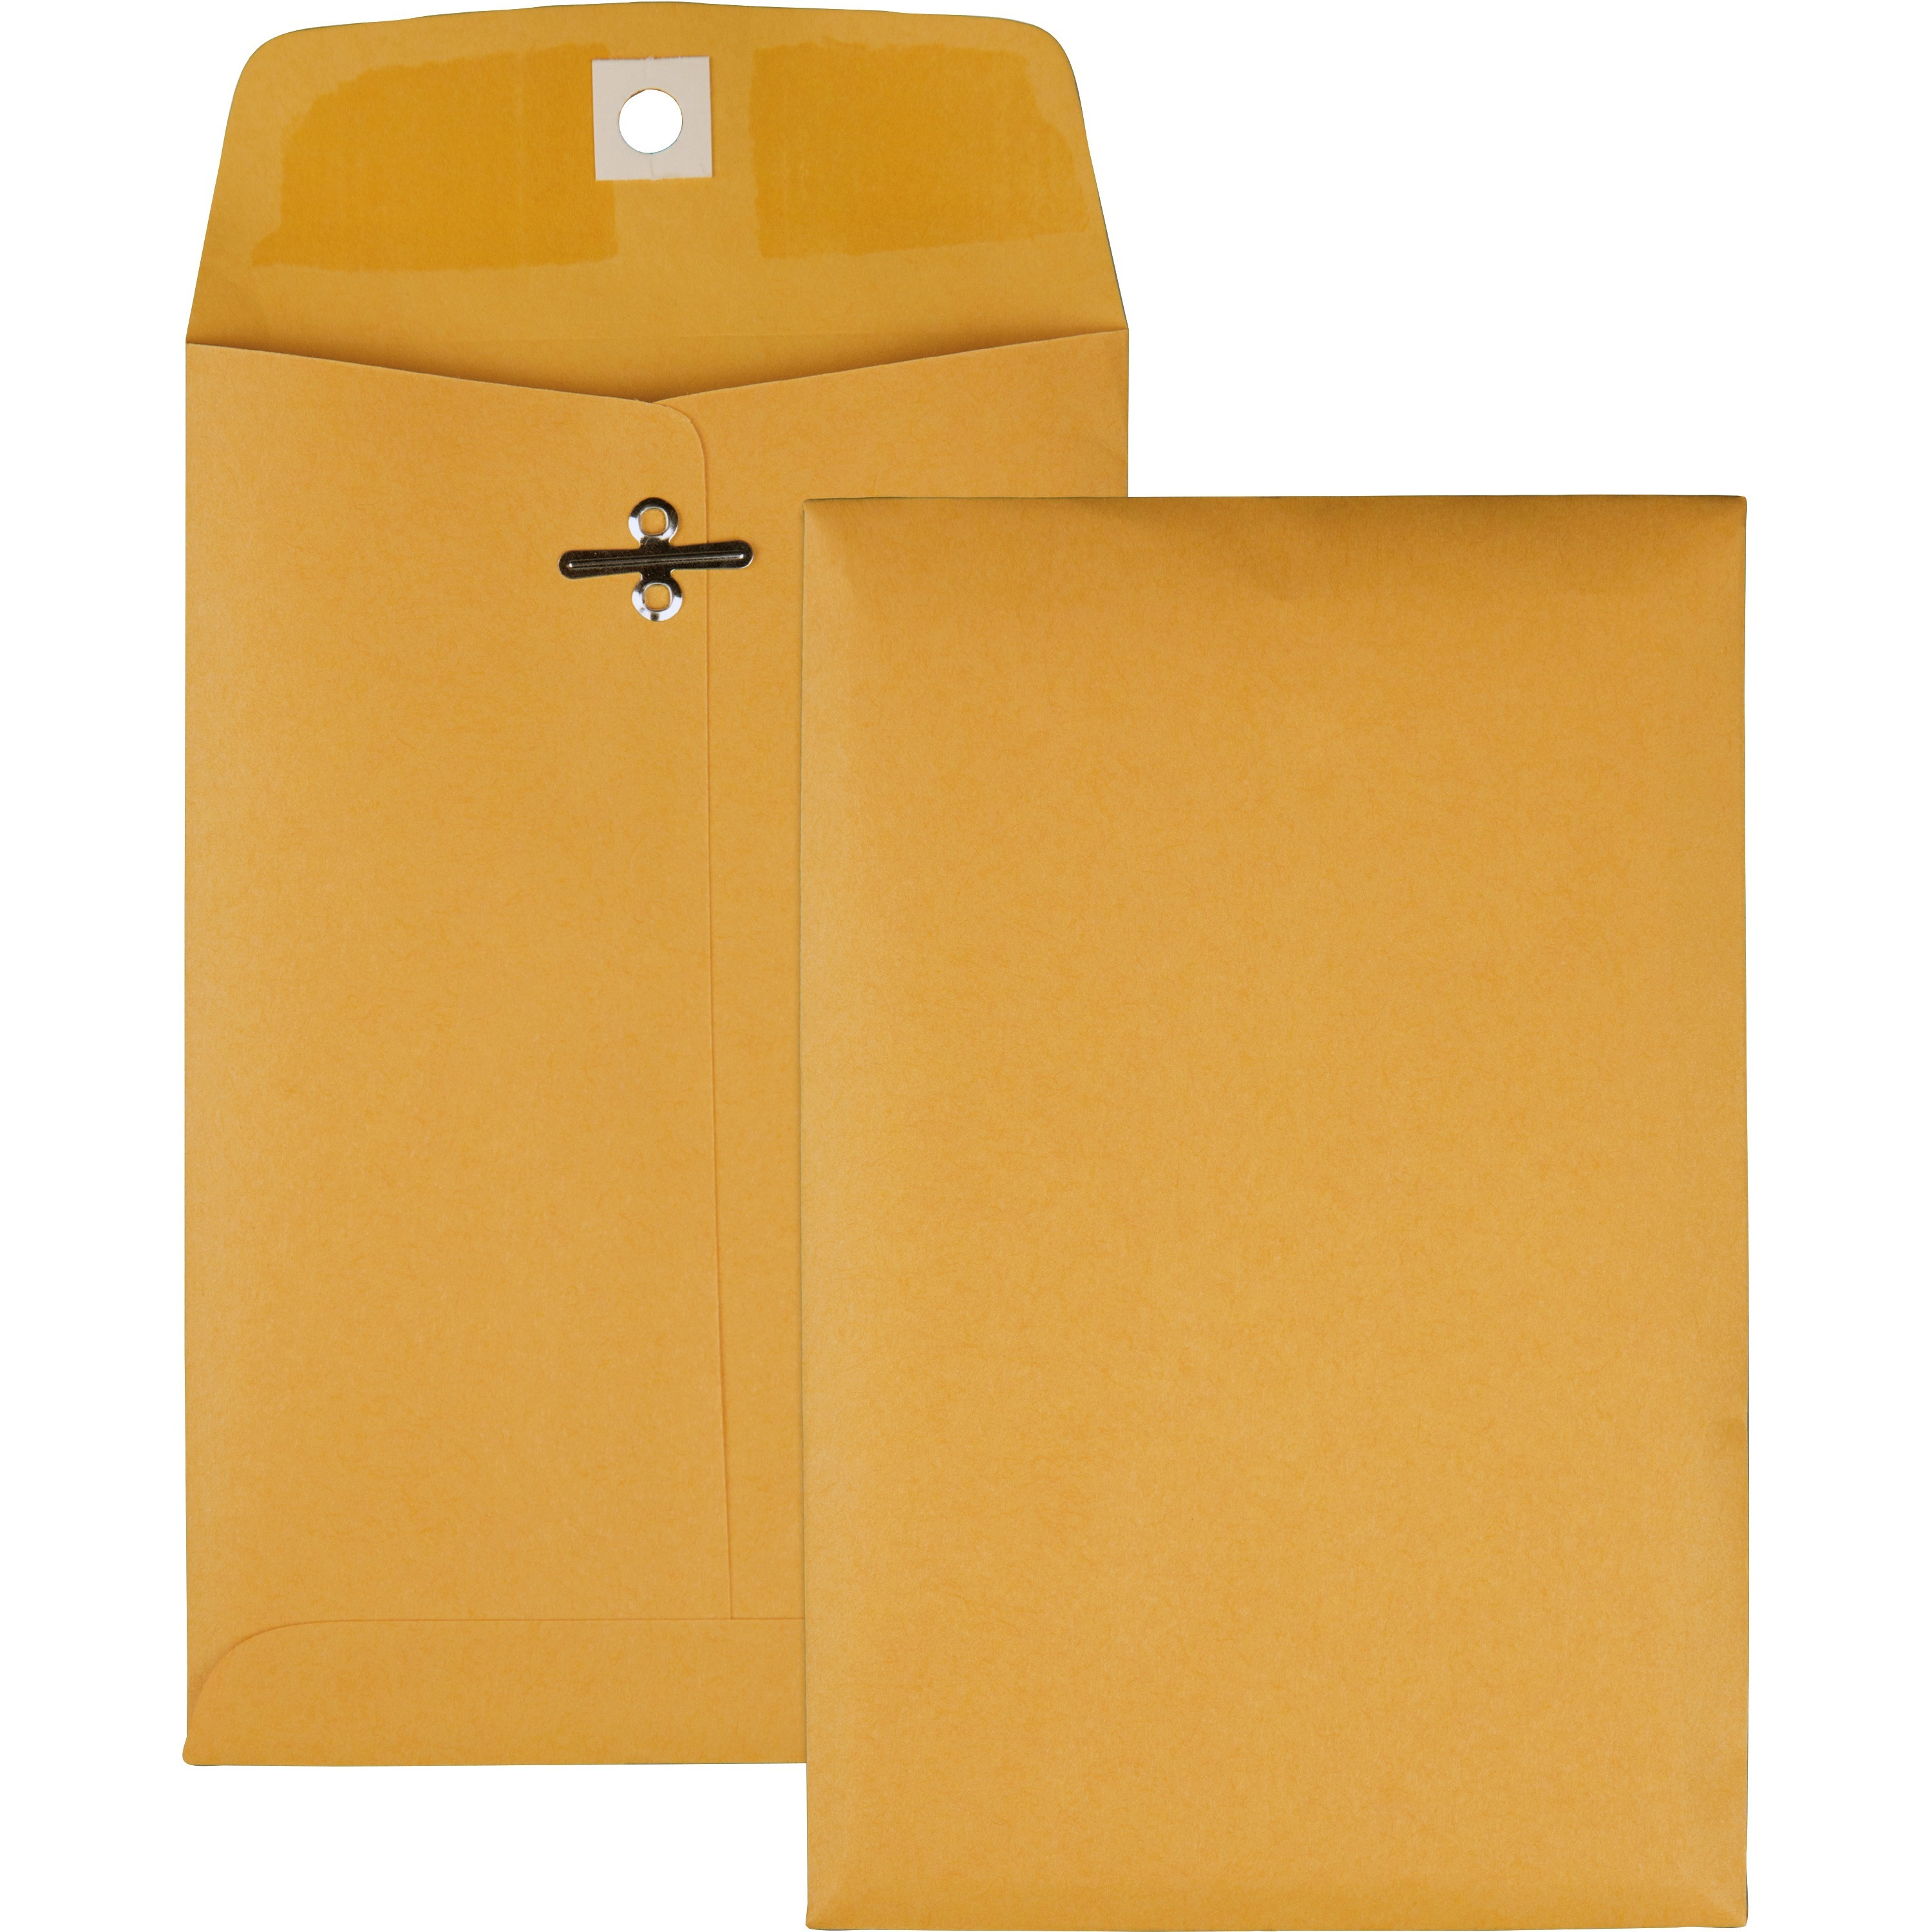 Clasp Envelope, 5 x 7 1/2, 28lb, Brown Kraft, 100/Box